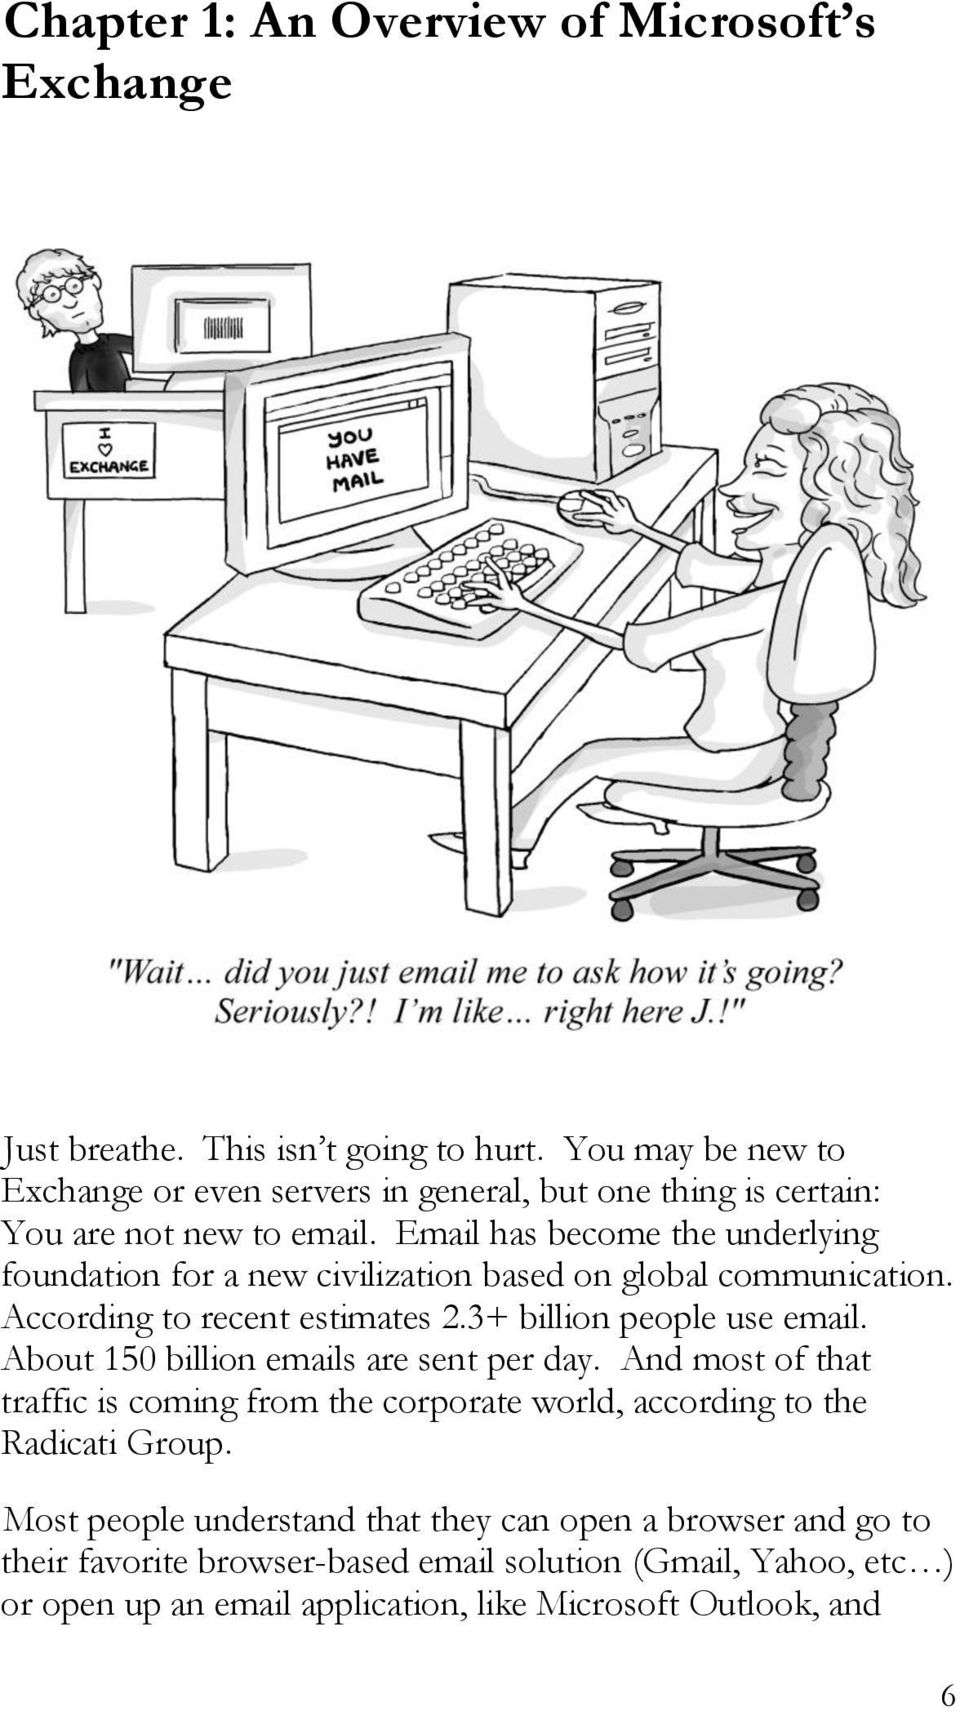 Email has become the underlying foundation for a new civilization based on global communication. According to recent estimates 2.3+ billion people use email.